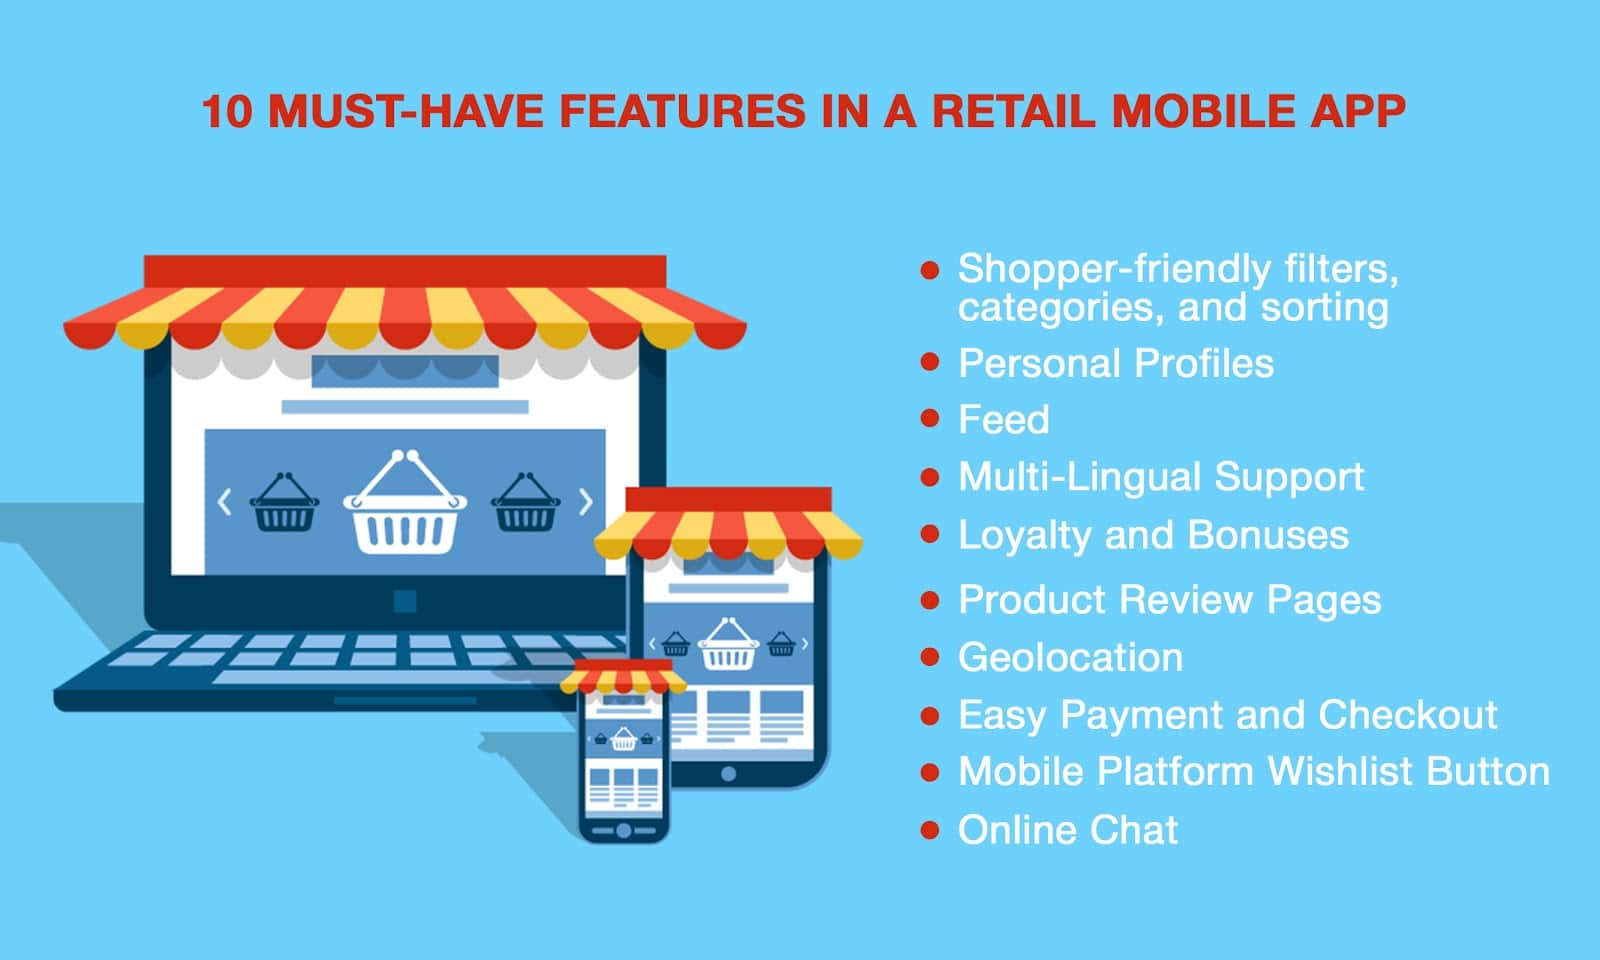 10 Must-Have Features in a Retail Mobile App